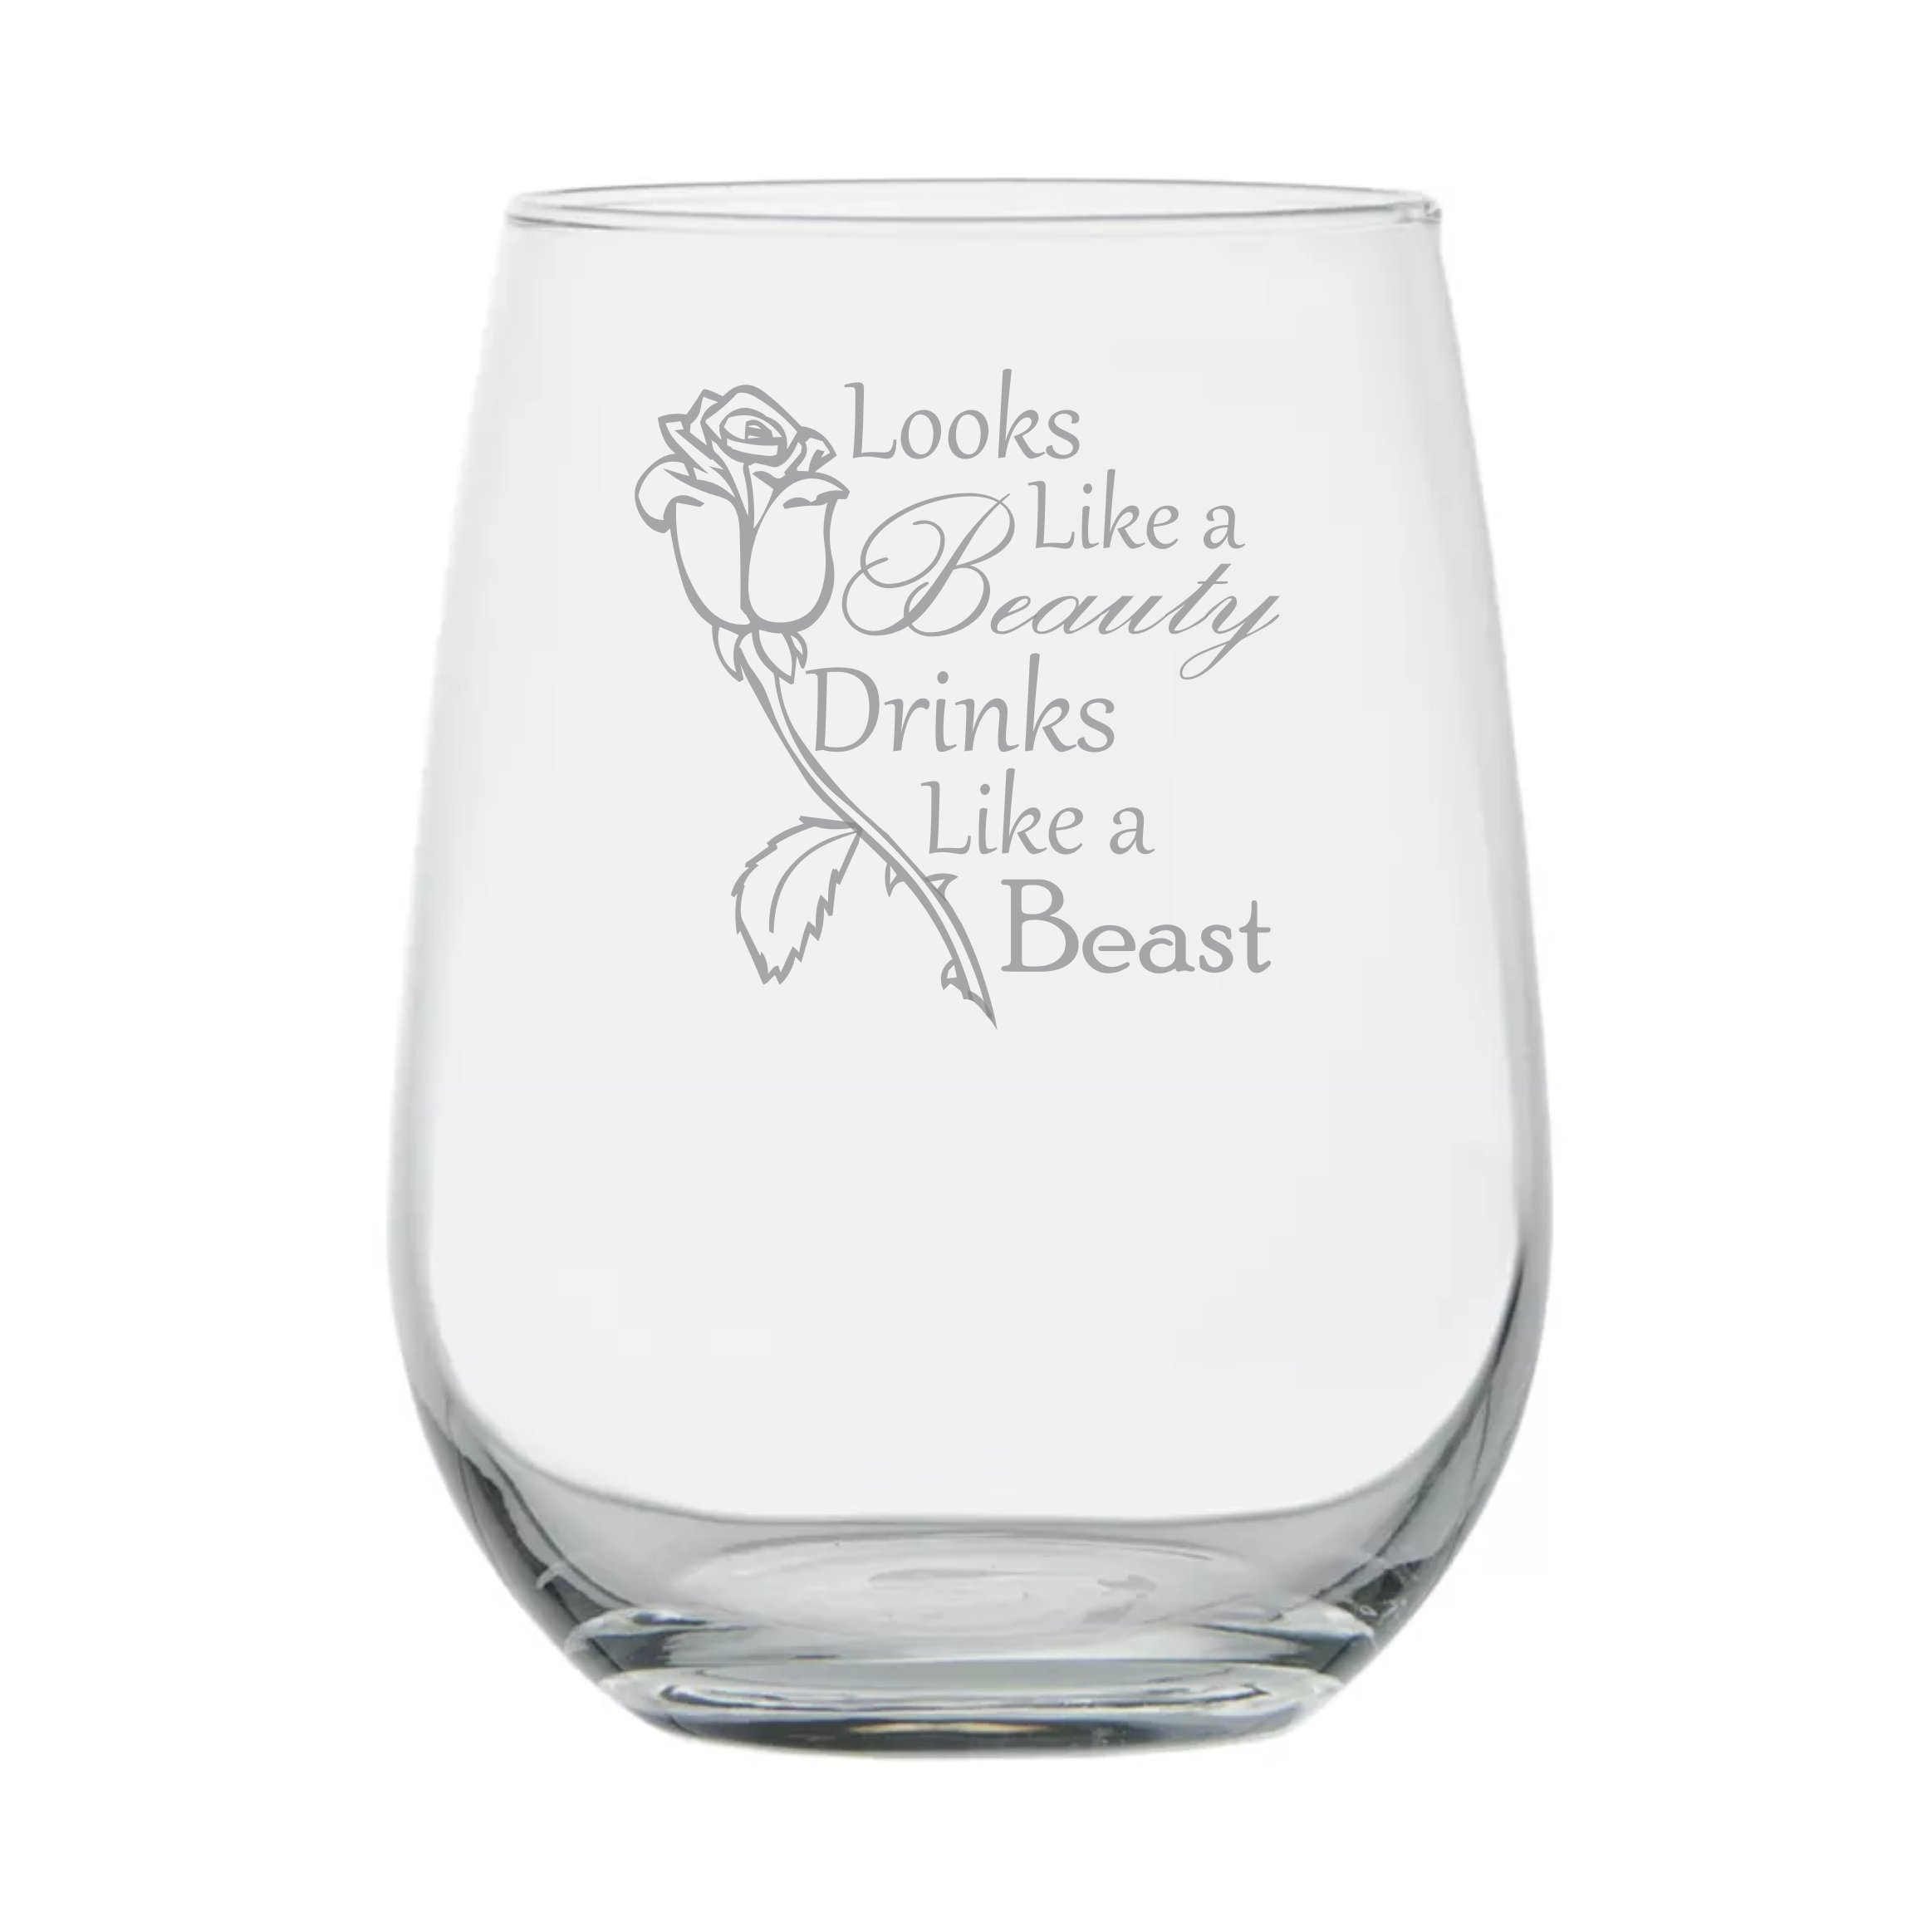 Looks Like a Beauty, Drinks Like a Beast - Rose - Disney Princess Wine Glass - Birthday Glass - Gifts for Friend - Girlfriend Anniversary Couples Gifts - Glass Dome- Movie Themed